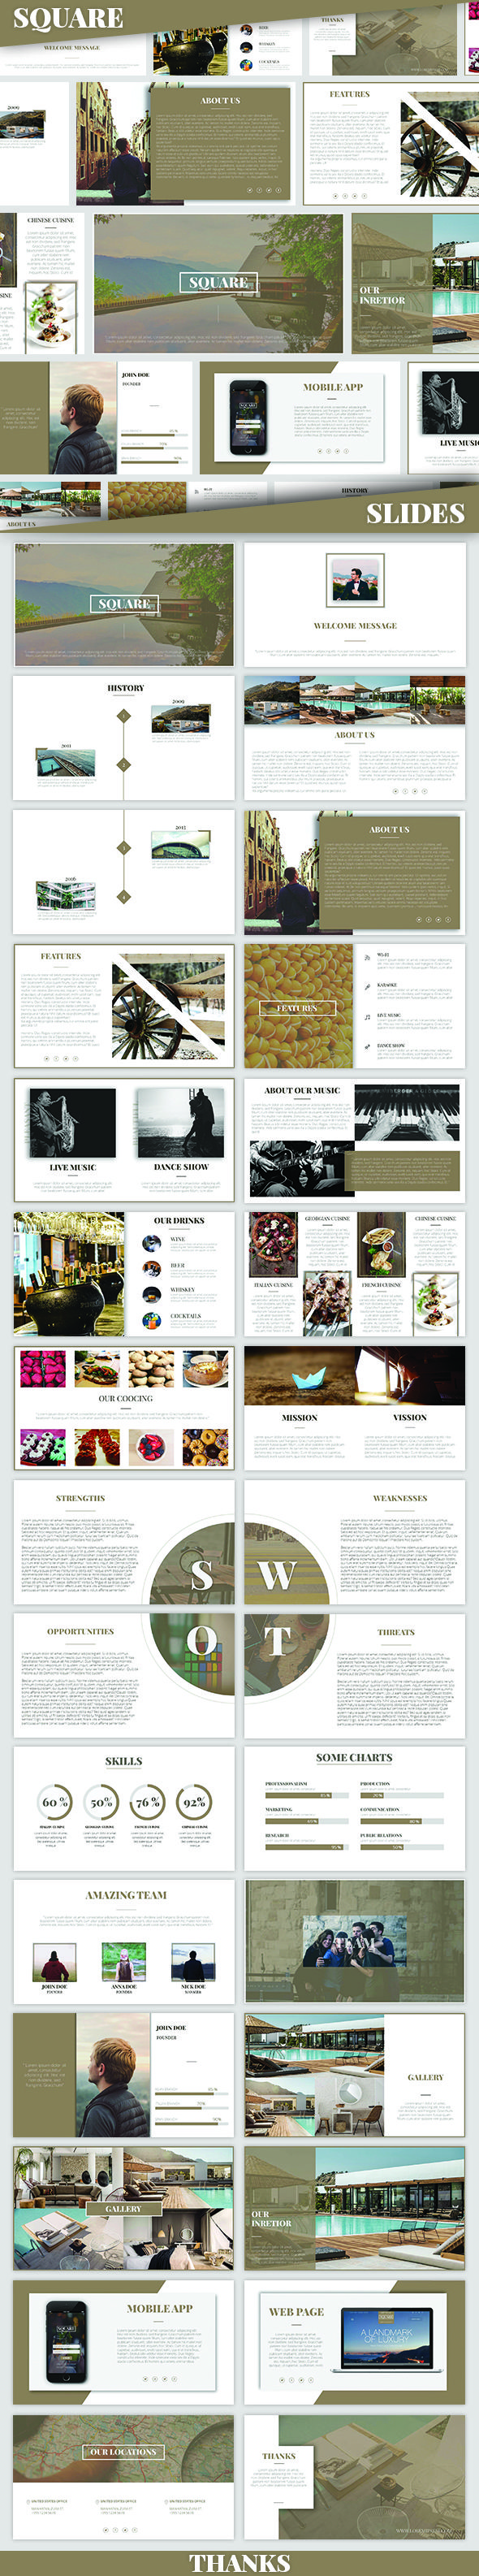 SQUARE - Powerpoint Presentation - PowerPoint Templates Presentation Templates                                                                                                                                                                                 Mais